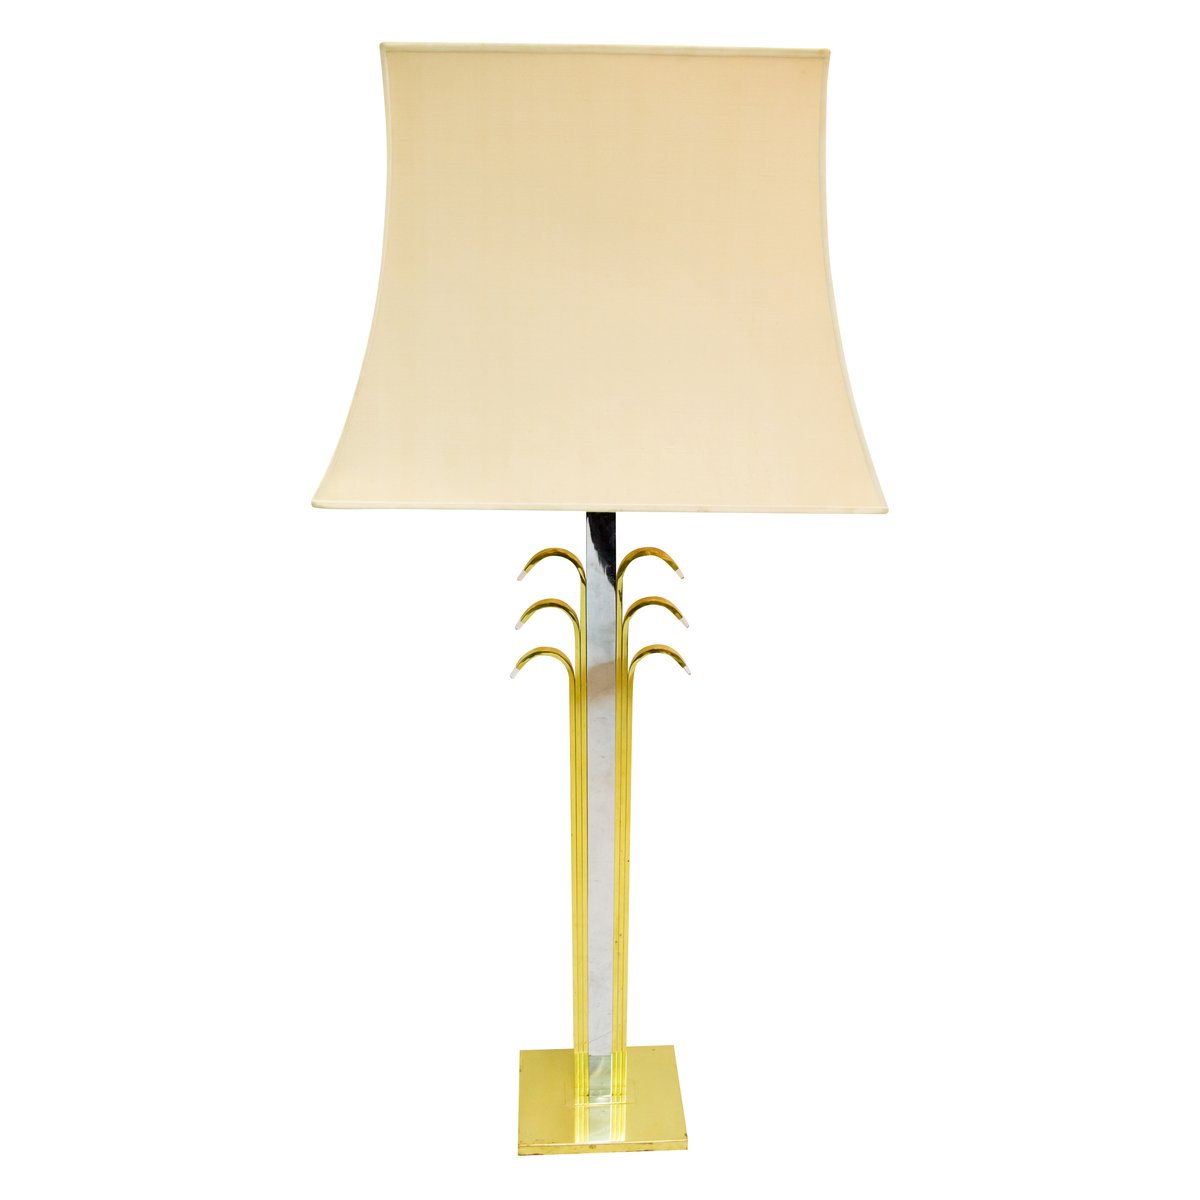 Vintage Palm Tree Table Lamp 1970s For Sale At Pamono